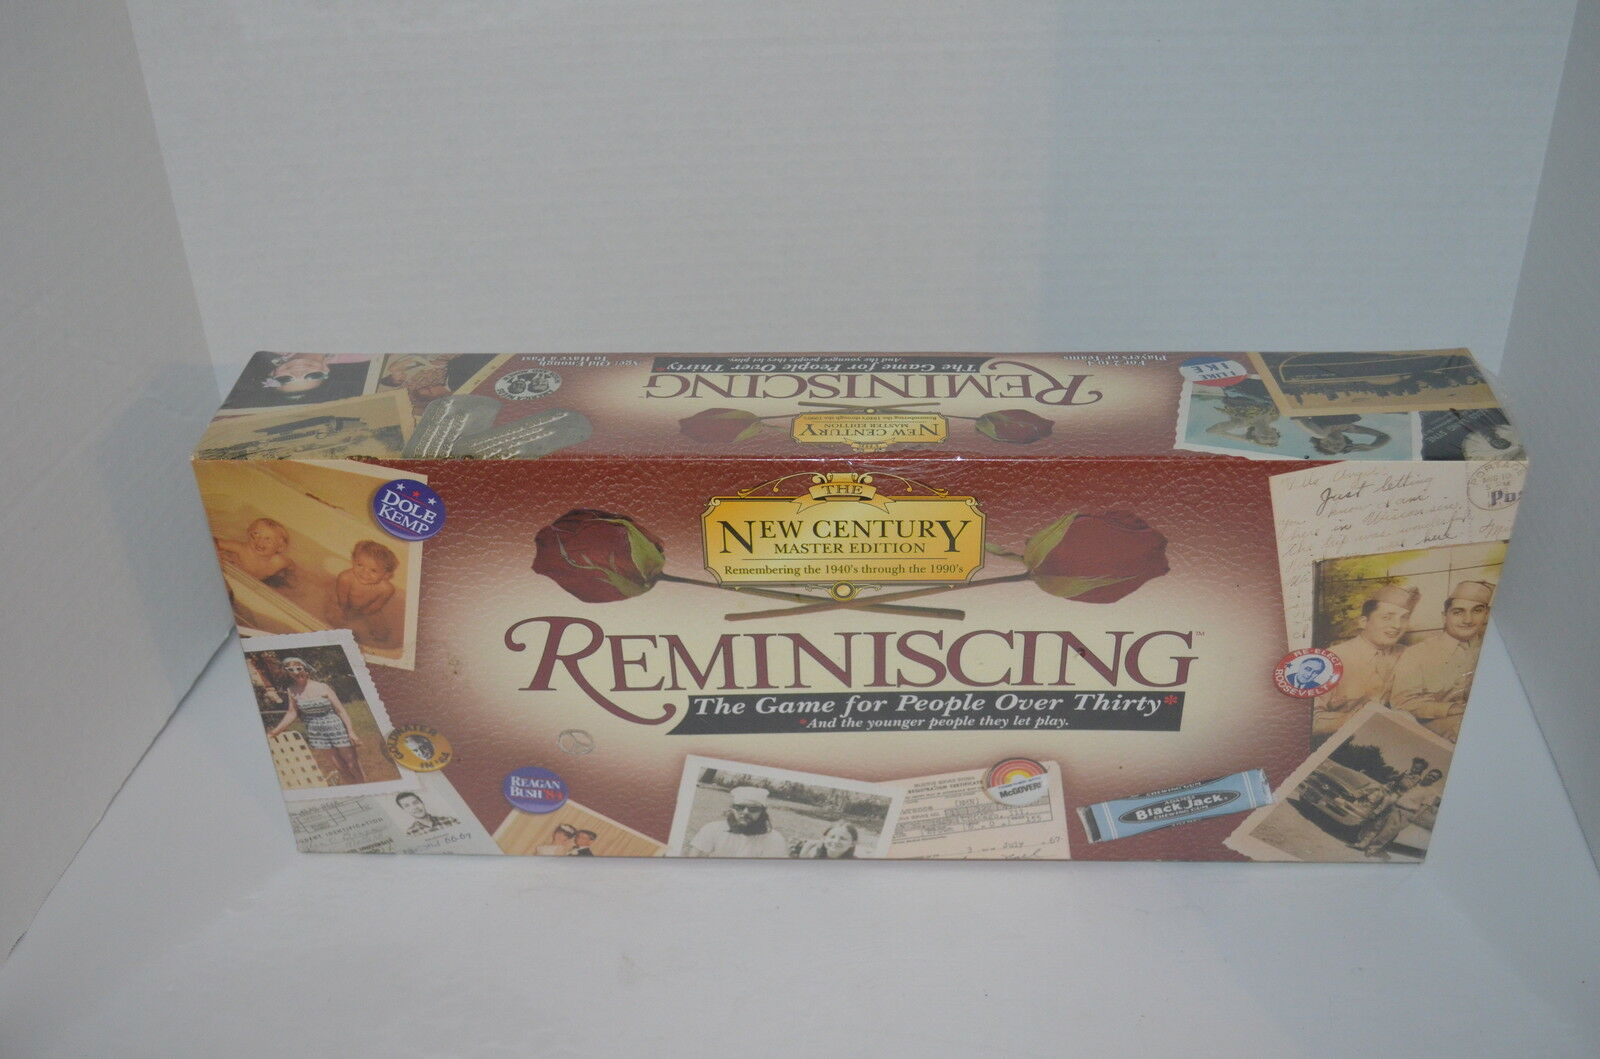 Reminiscing Board Game For People Over 30 Edition New Century Master Edition 30 NEW 995d92